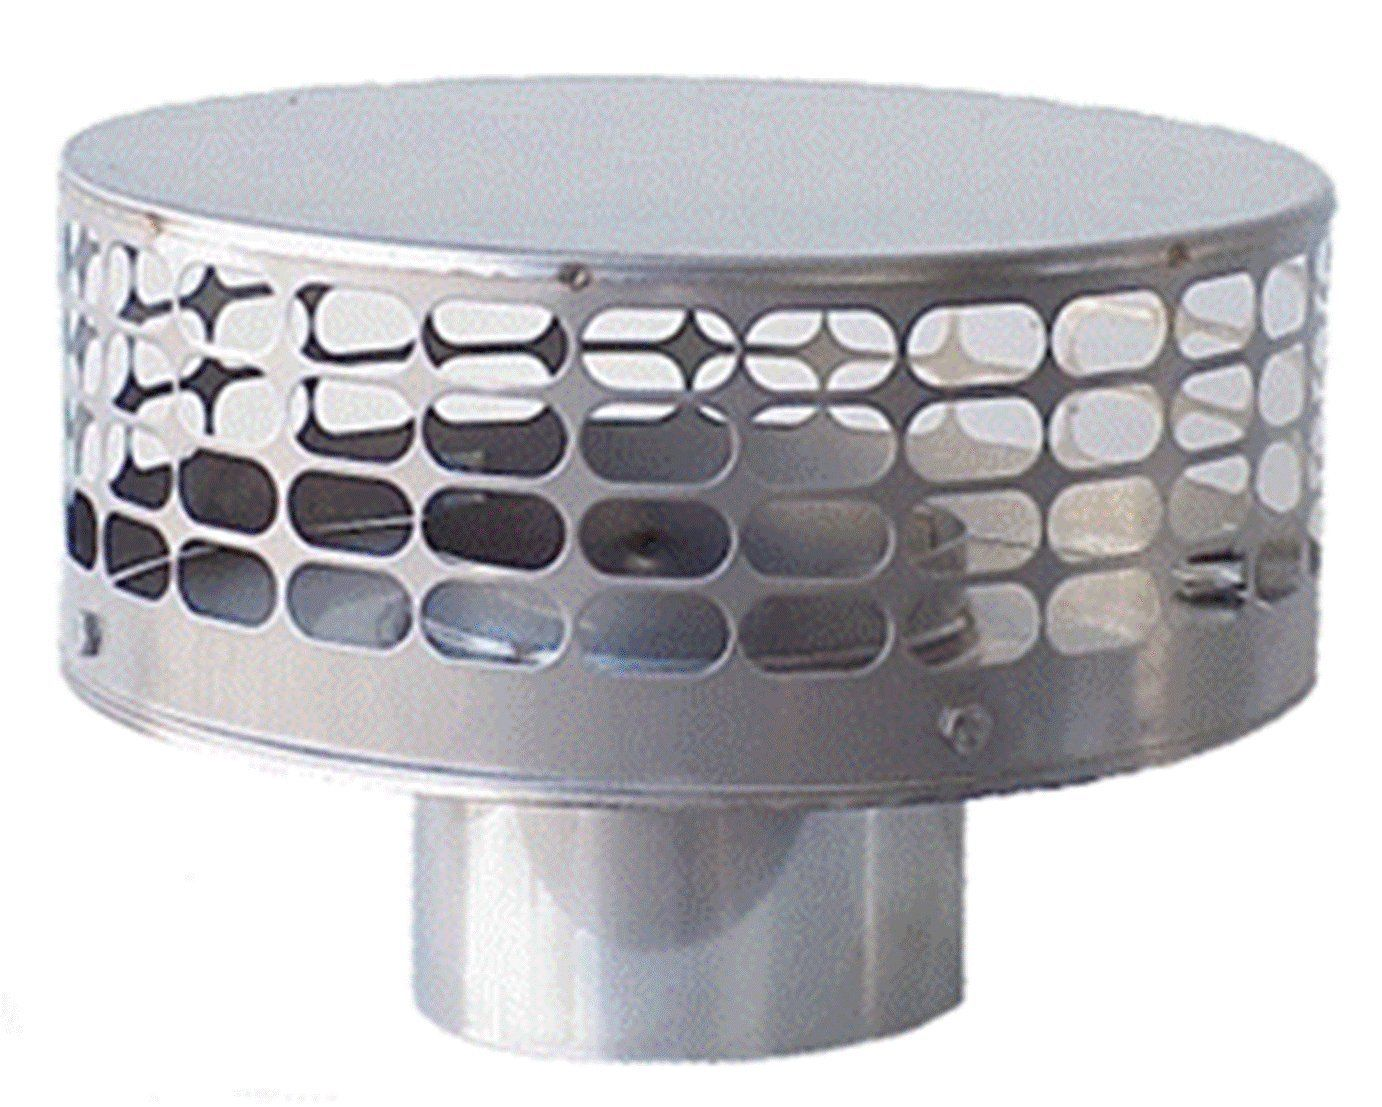 The Forever Cap Ccfs10 10 Inch Stainless Steel Liner Top Chimney Cap Want Additional Info Click On The Image Chimney Cap Roof Cap Wall Stove